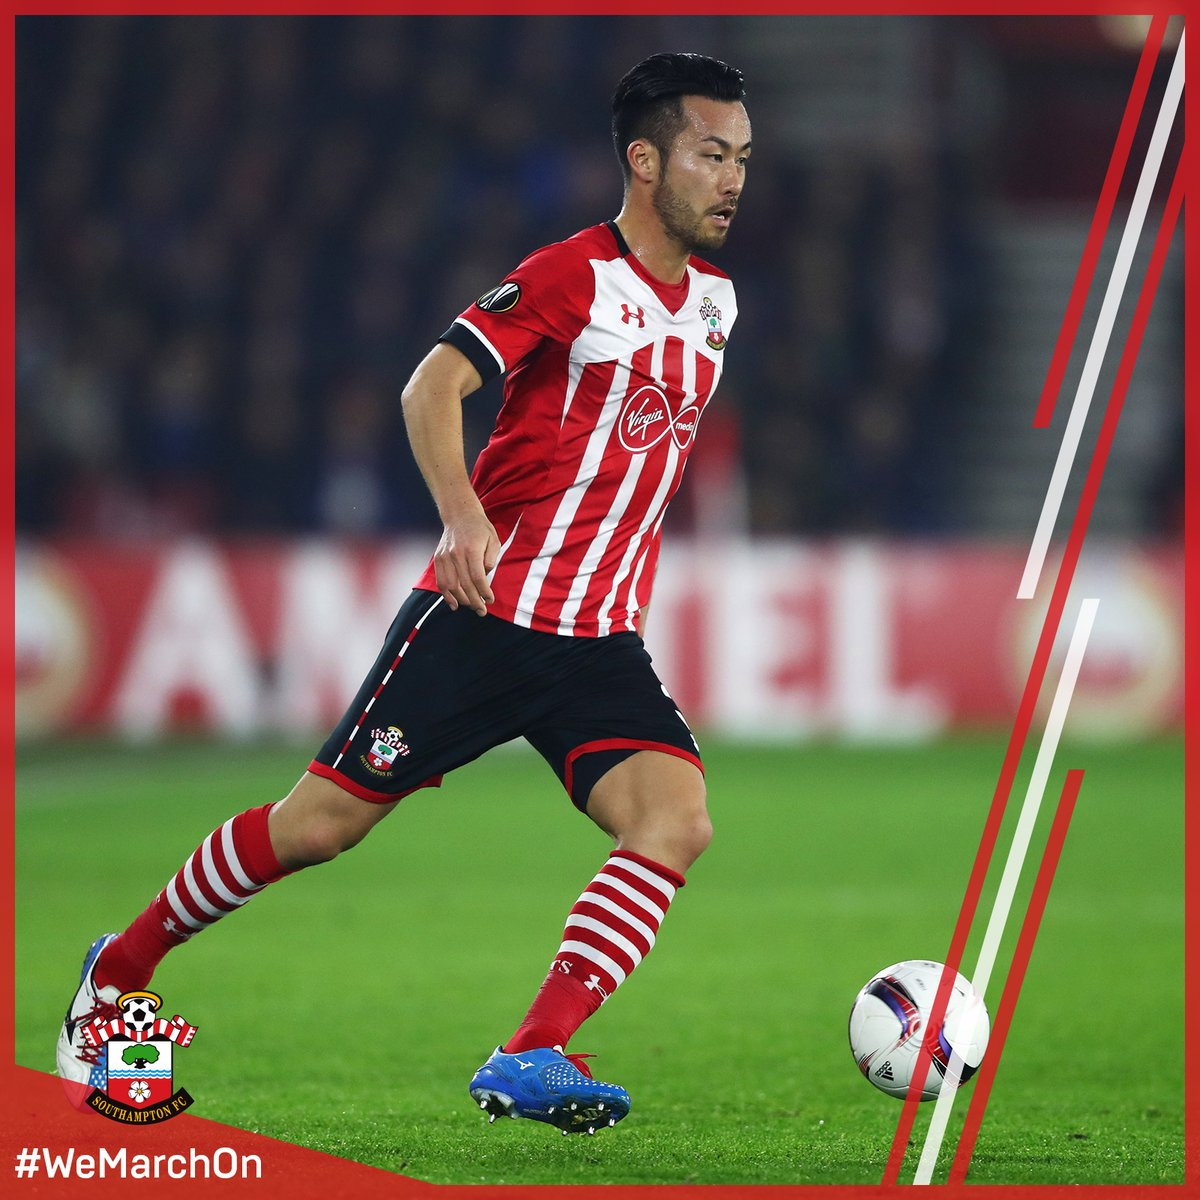 A terrific block from @MayaYoshida3 at one end, before @VirgilvDijk is denied at the other